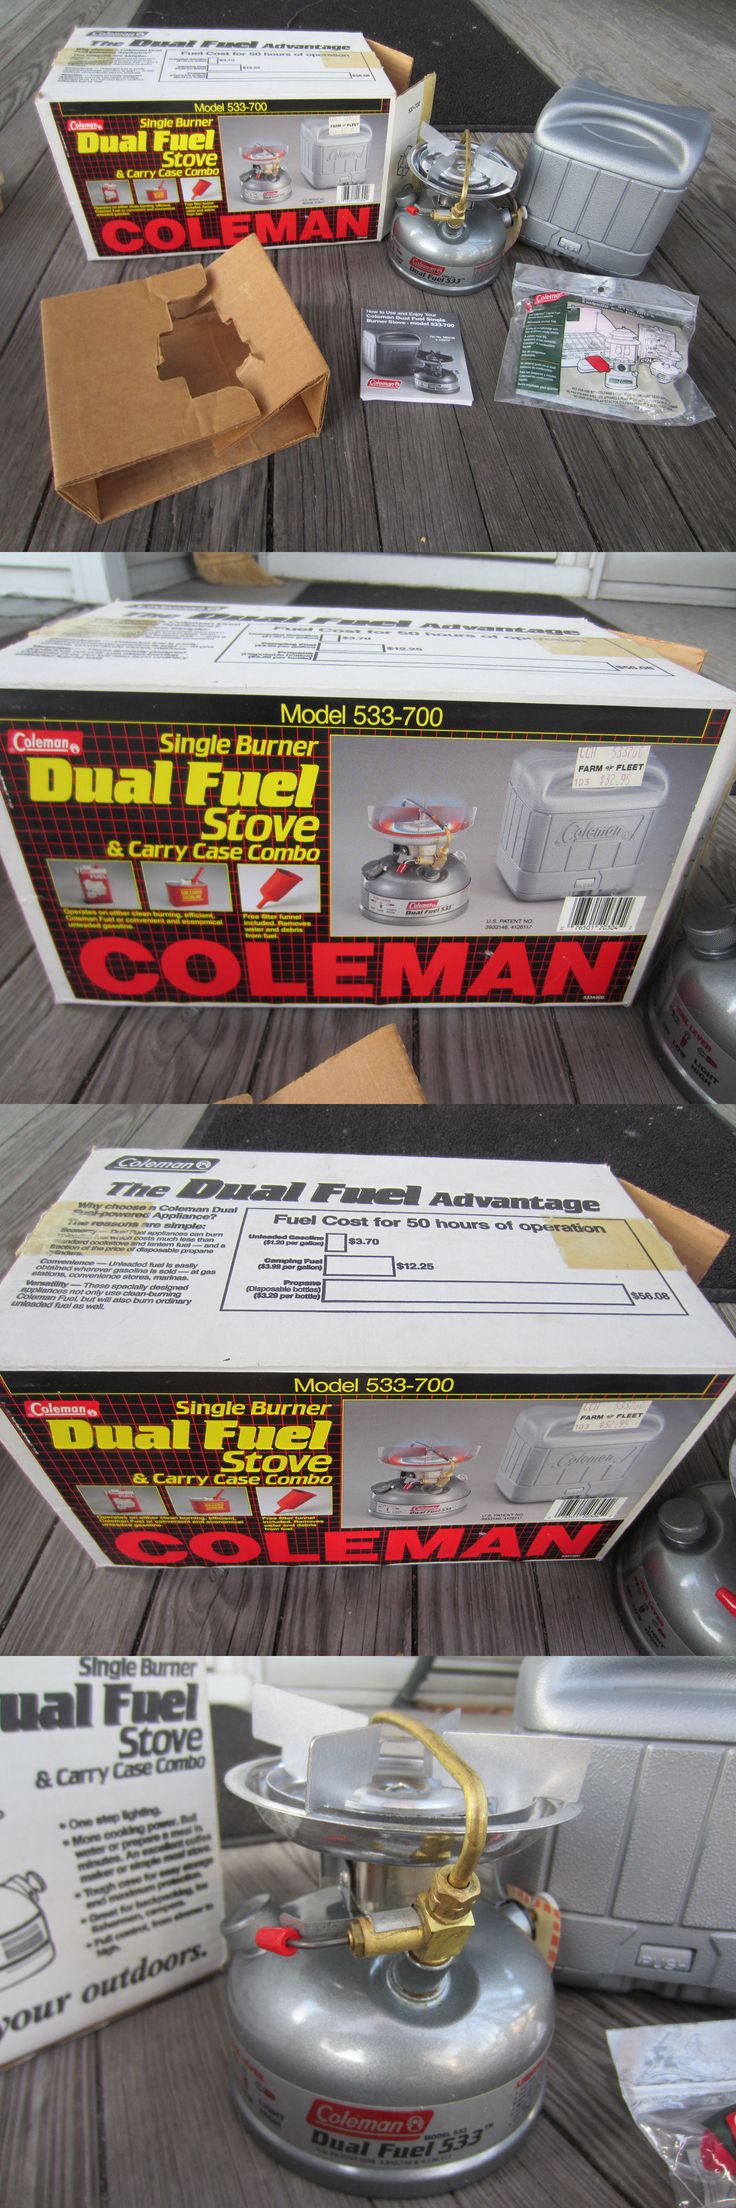 Camping Stoves 181386: Vintage Coleman Model 533-700 Dual Fuel Camping Stove W Case, Funnel, Orig Box! -> BUY IT NOW ONLY: $89.95 on eBay!